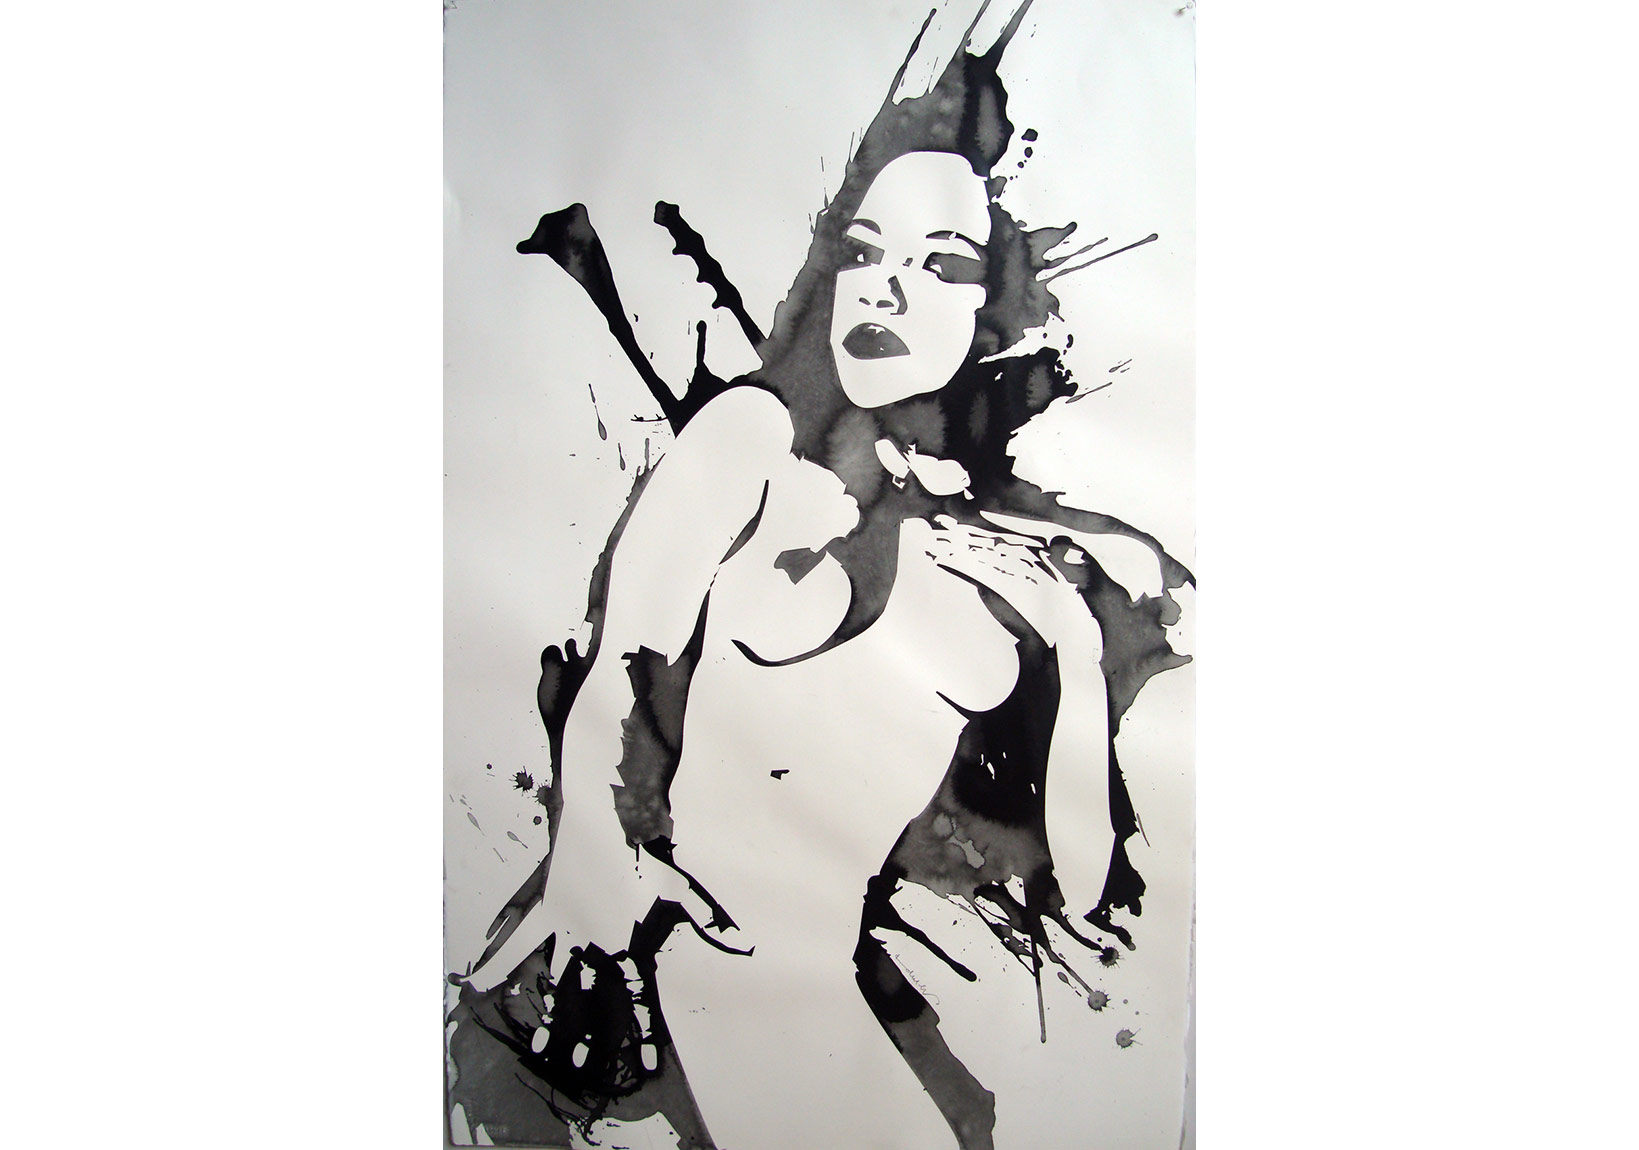 Kendell Geers, FV 11, 2007 Indian ink on paper 102 x 66 cm